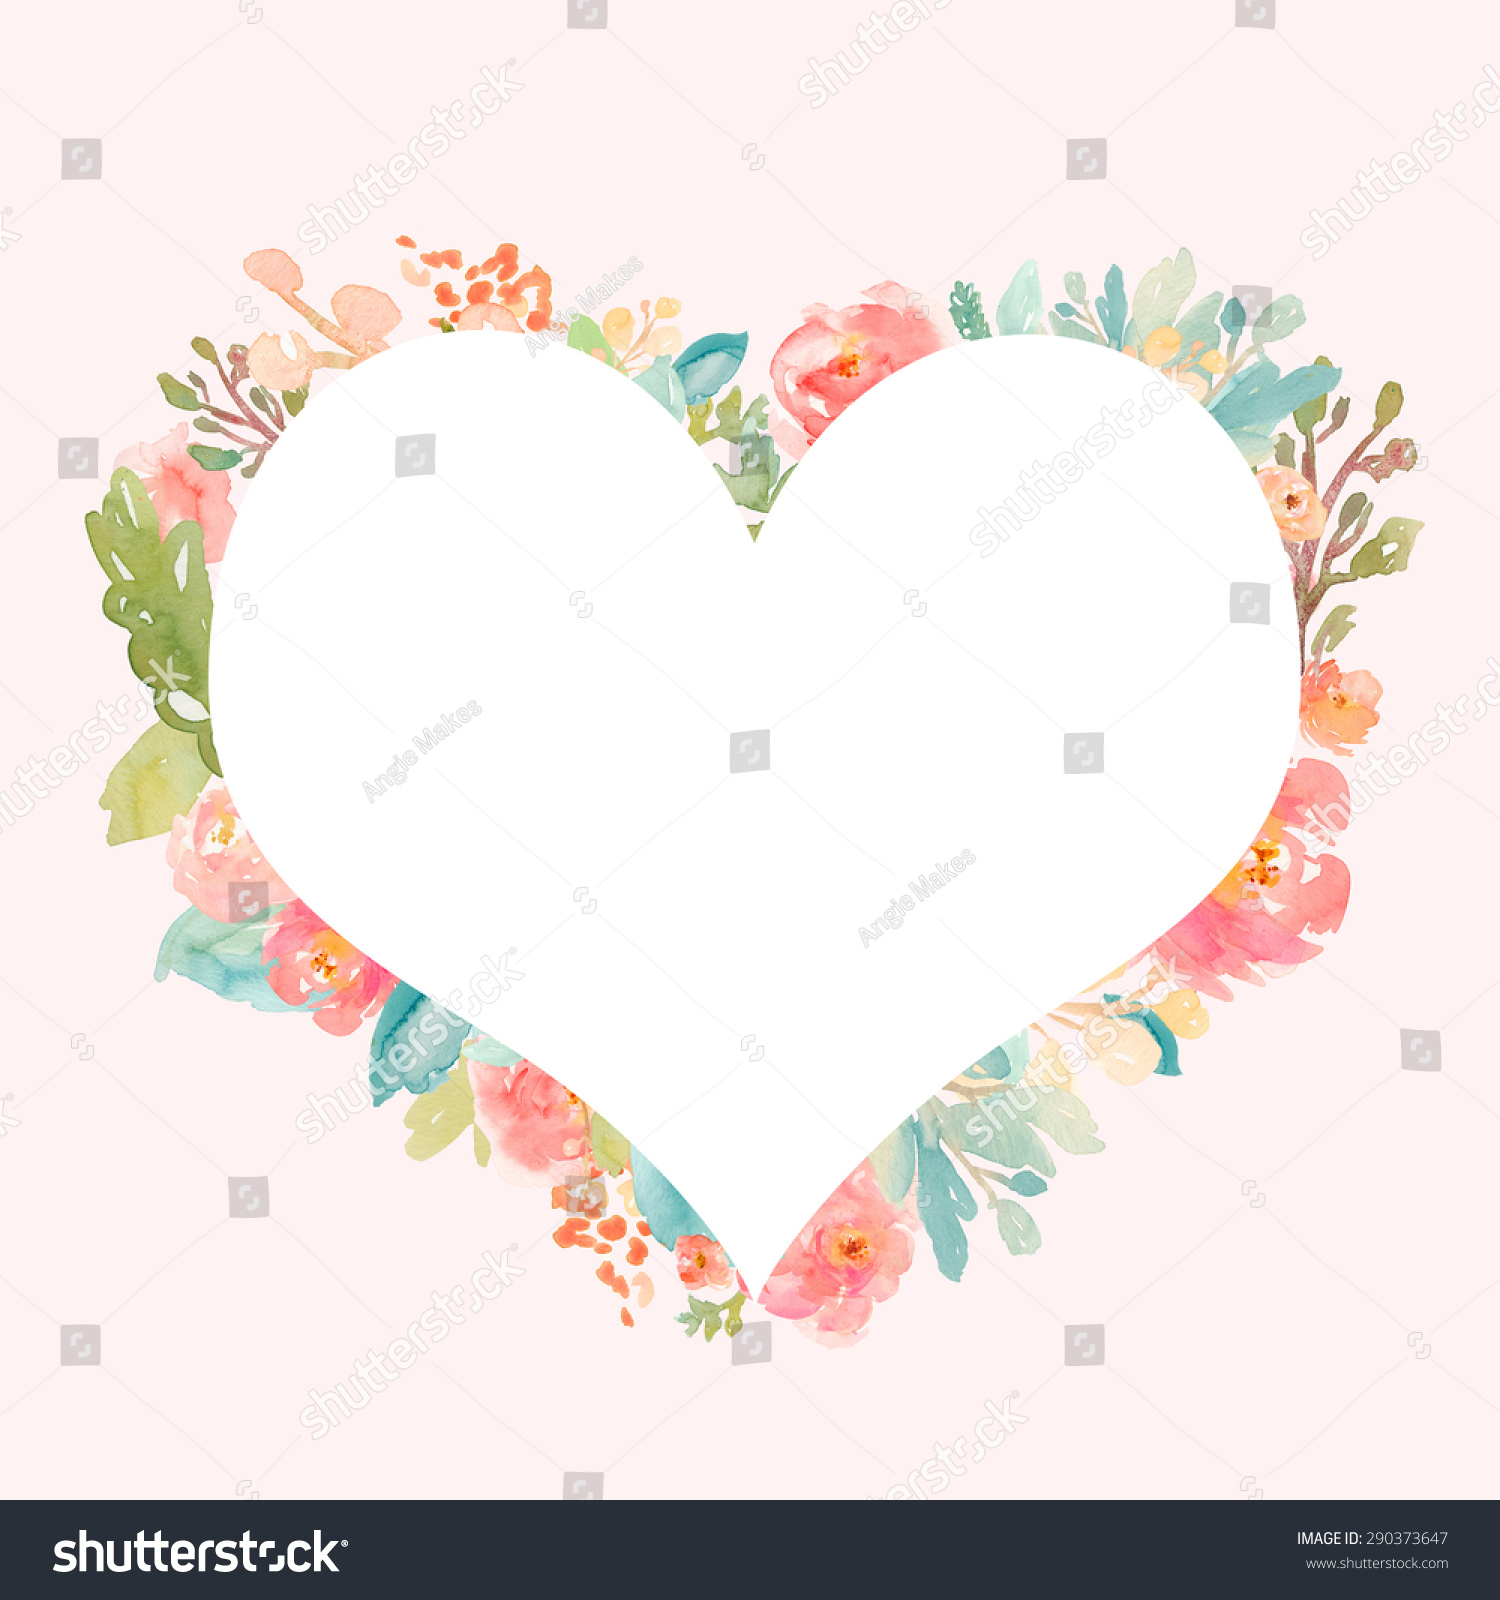 painted watercolor heart frame heart background watercolor flower heart wreath